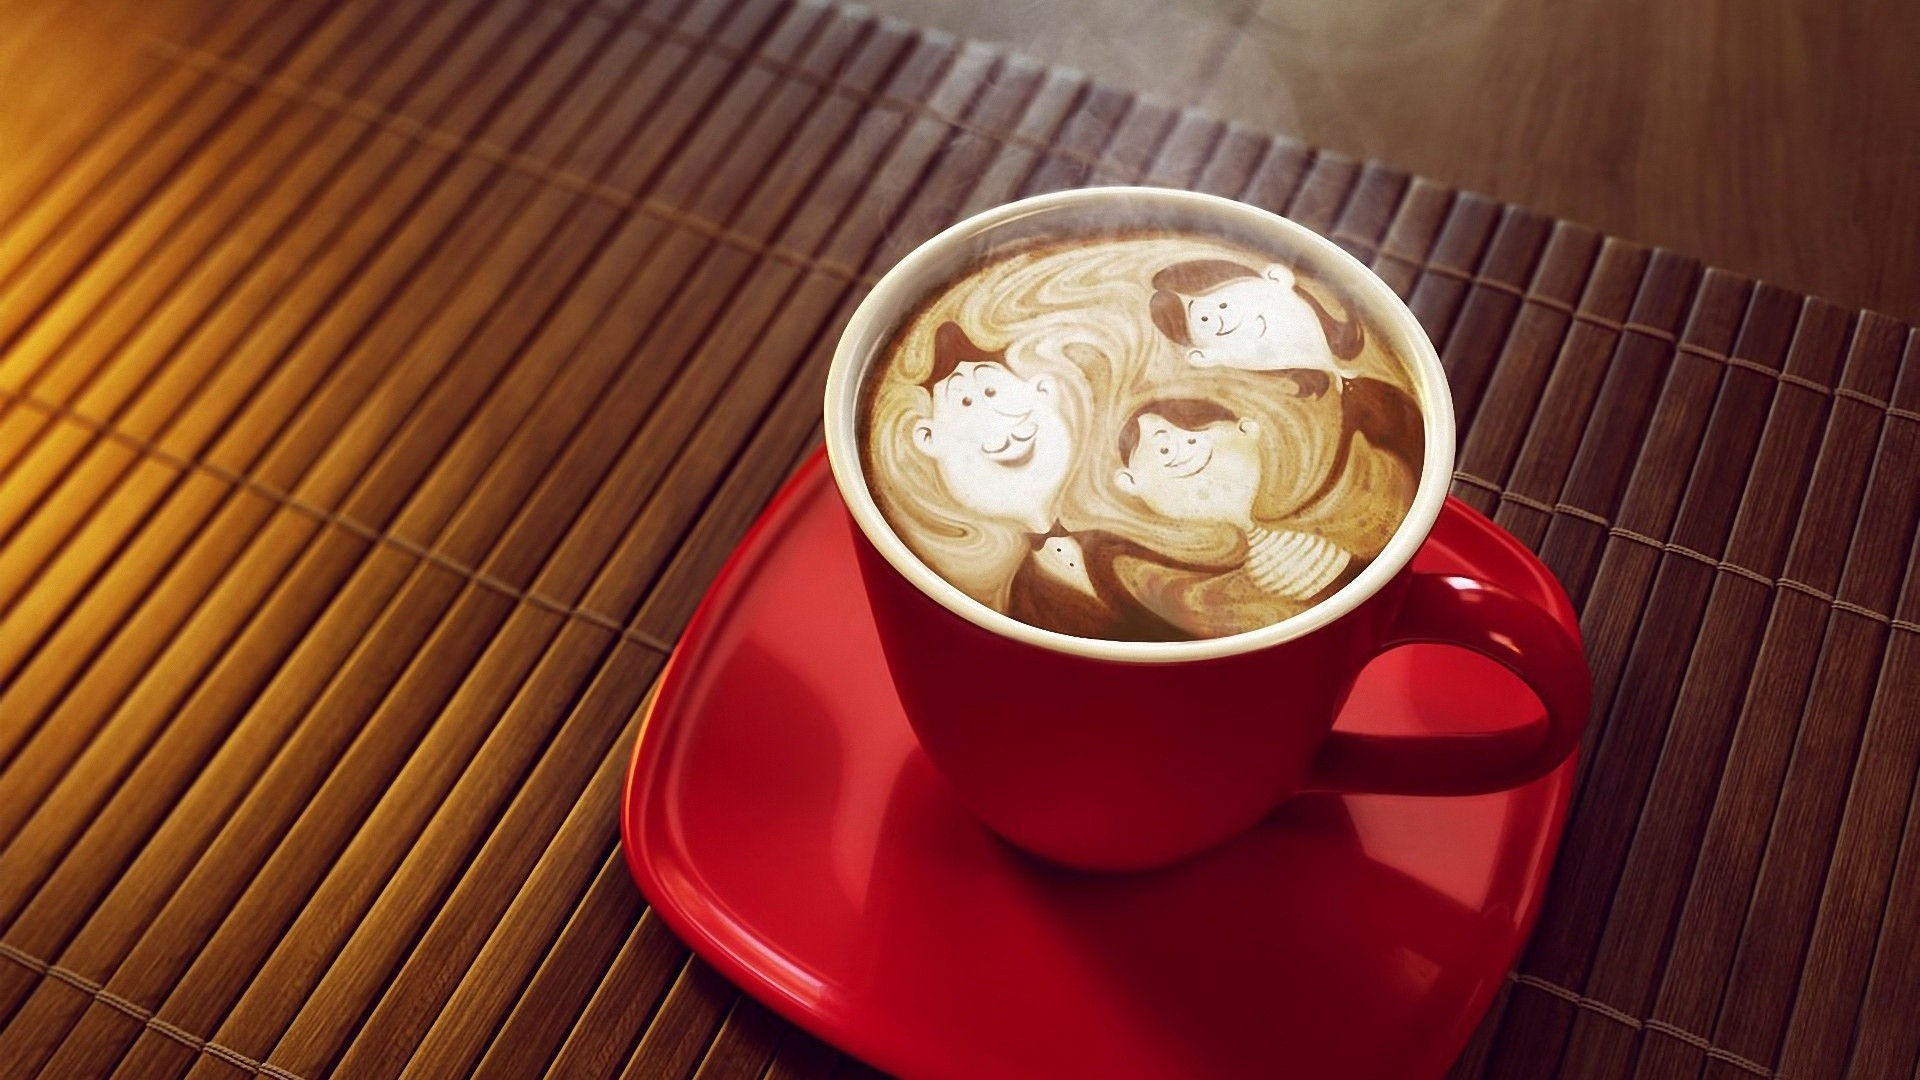 Cool Coffee Cup Wallpaper 38717 1920x1200 px